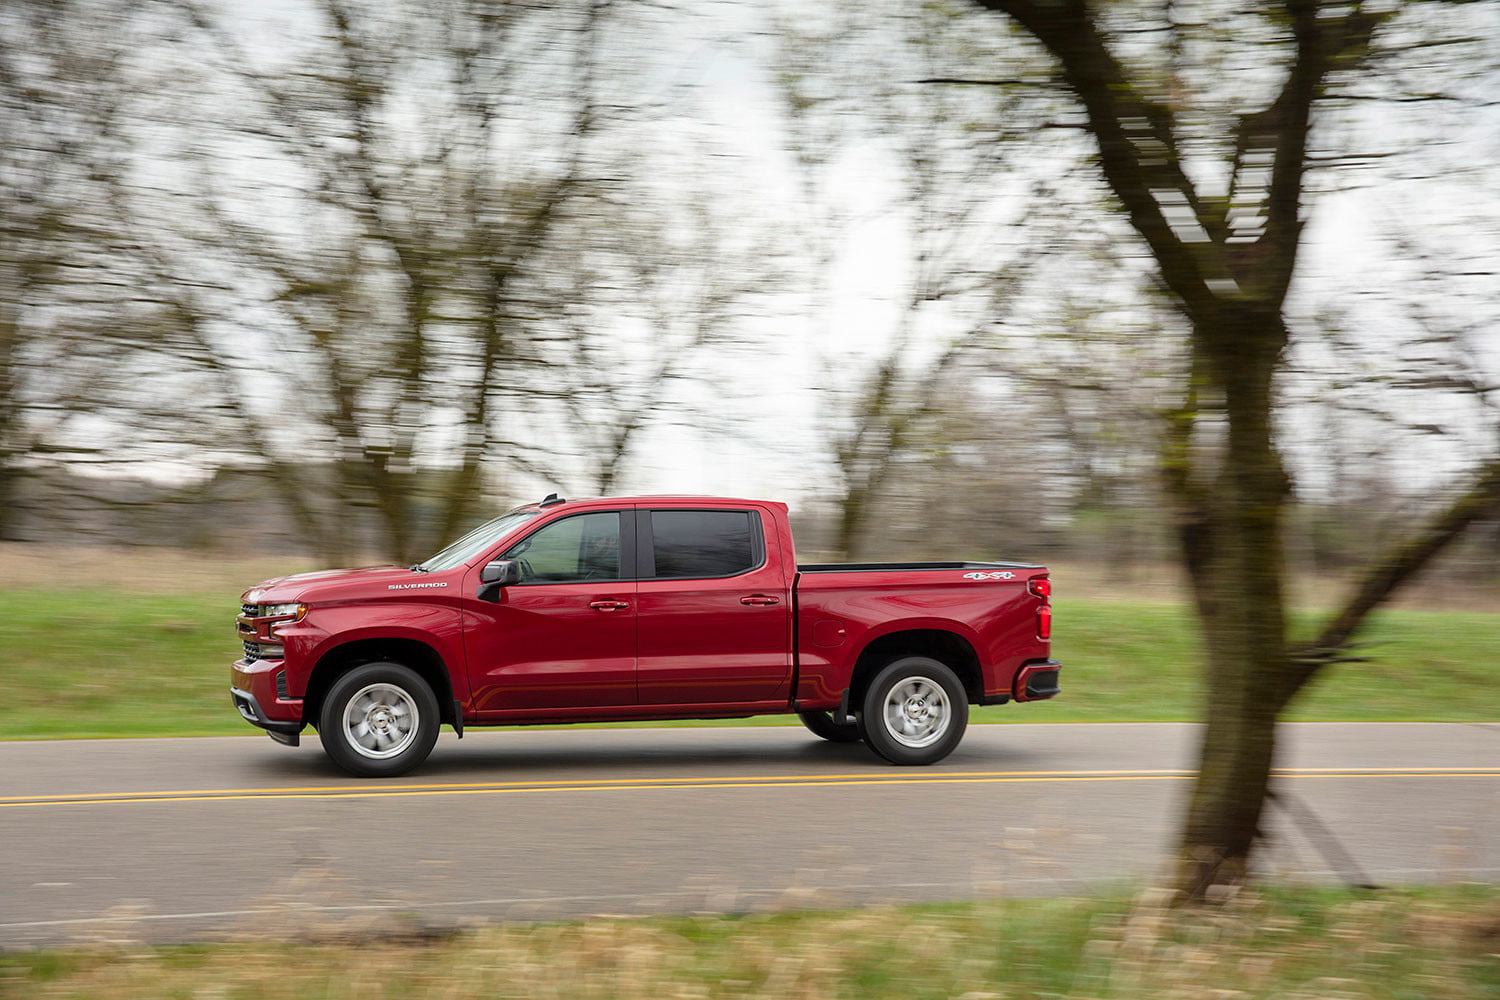 2019 chevrolet silverado first drive review digital trends. Black Bedroom Furniture Sets. Home Design Ideas